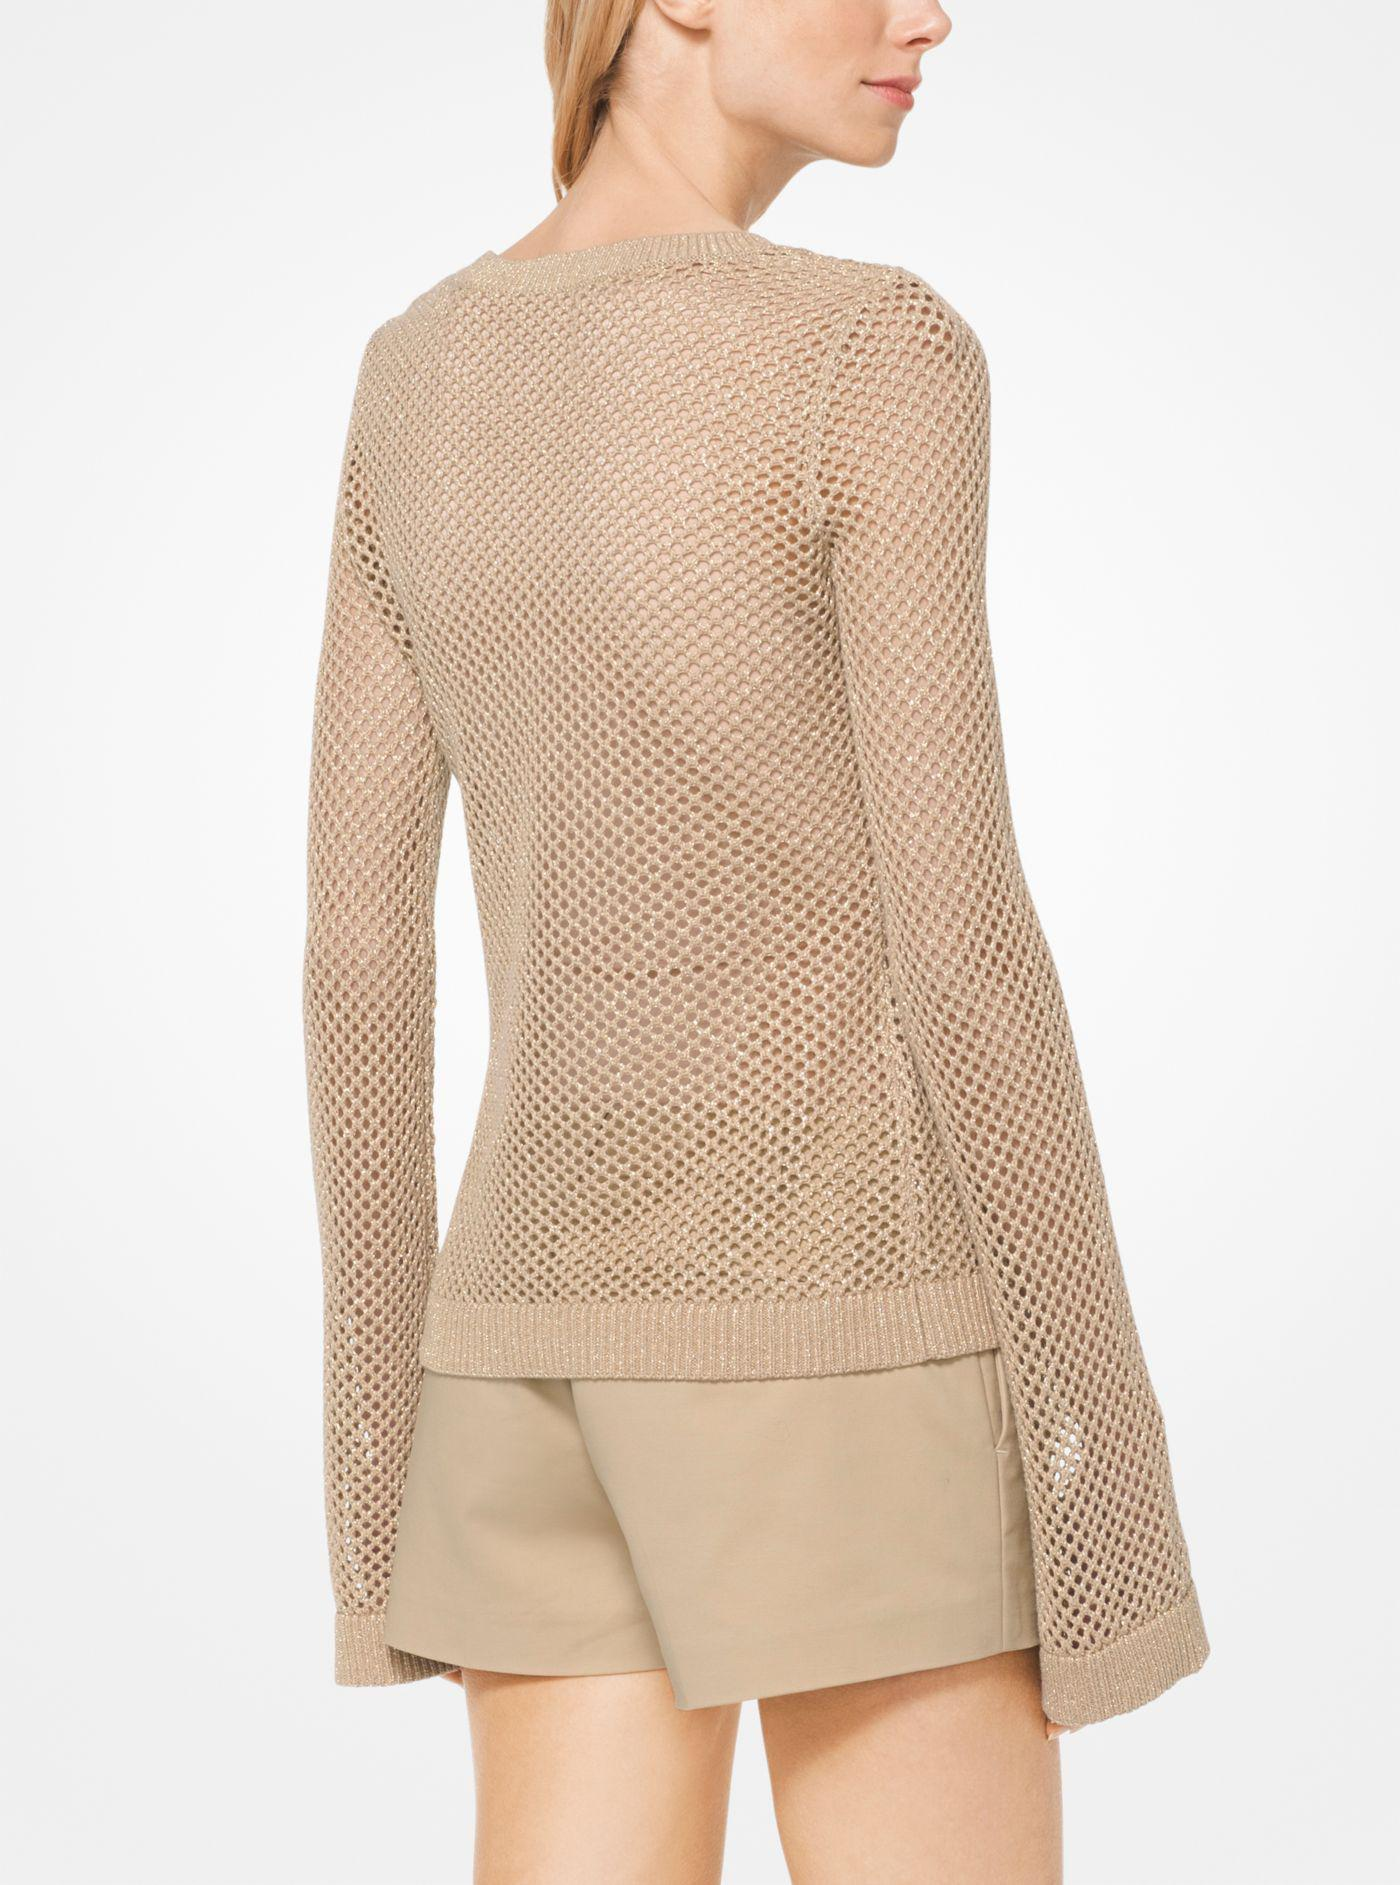 450055821ff8 Lyst - Michael Kors Metallic Open-knit Pullover in Natural